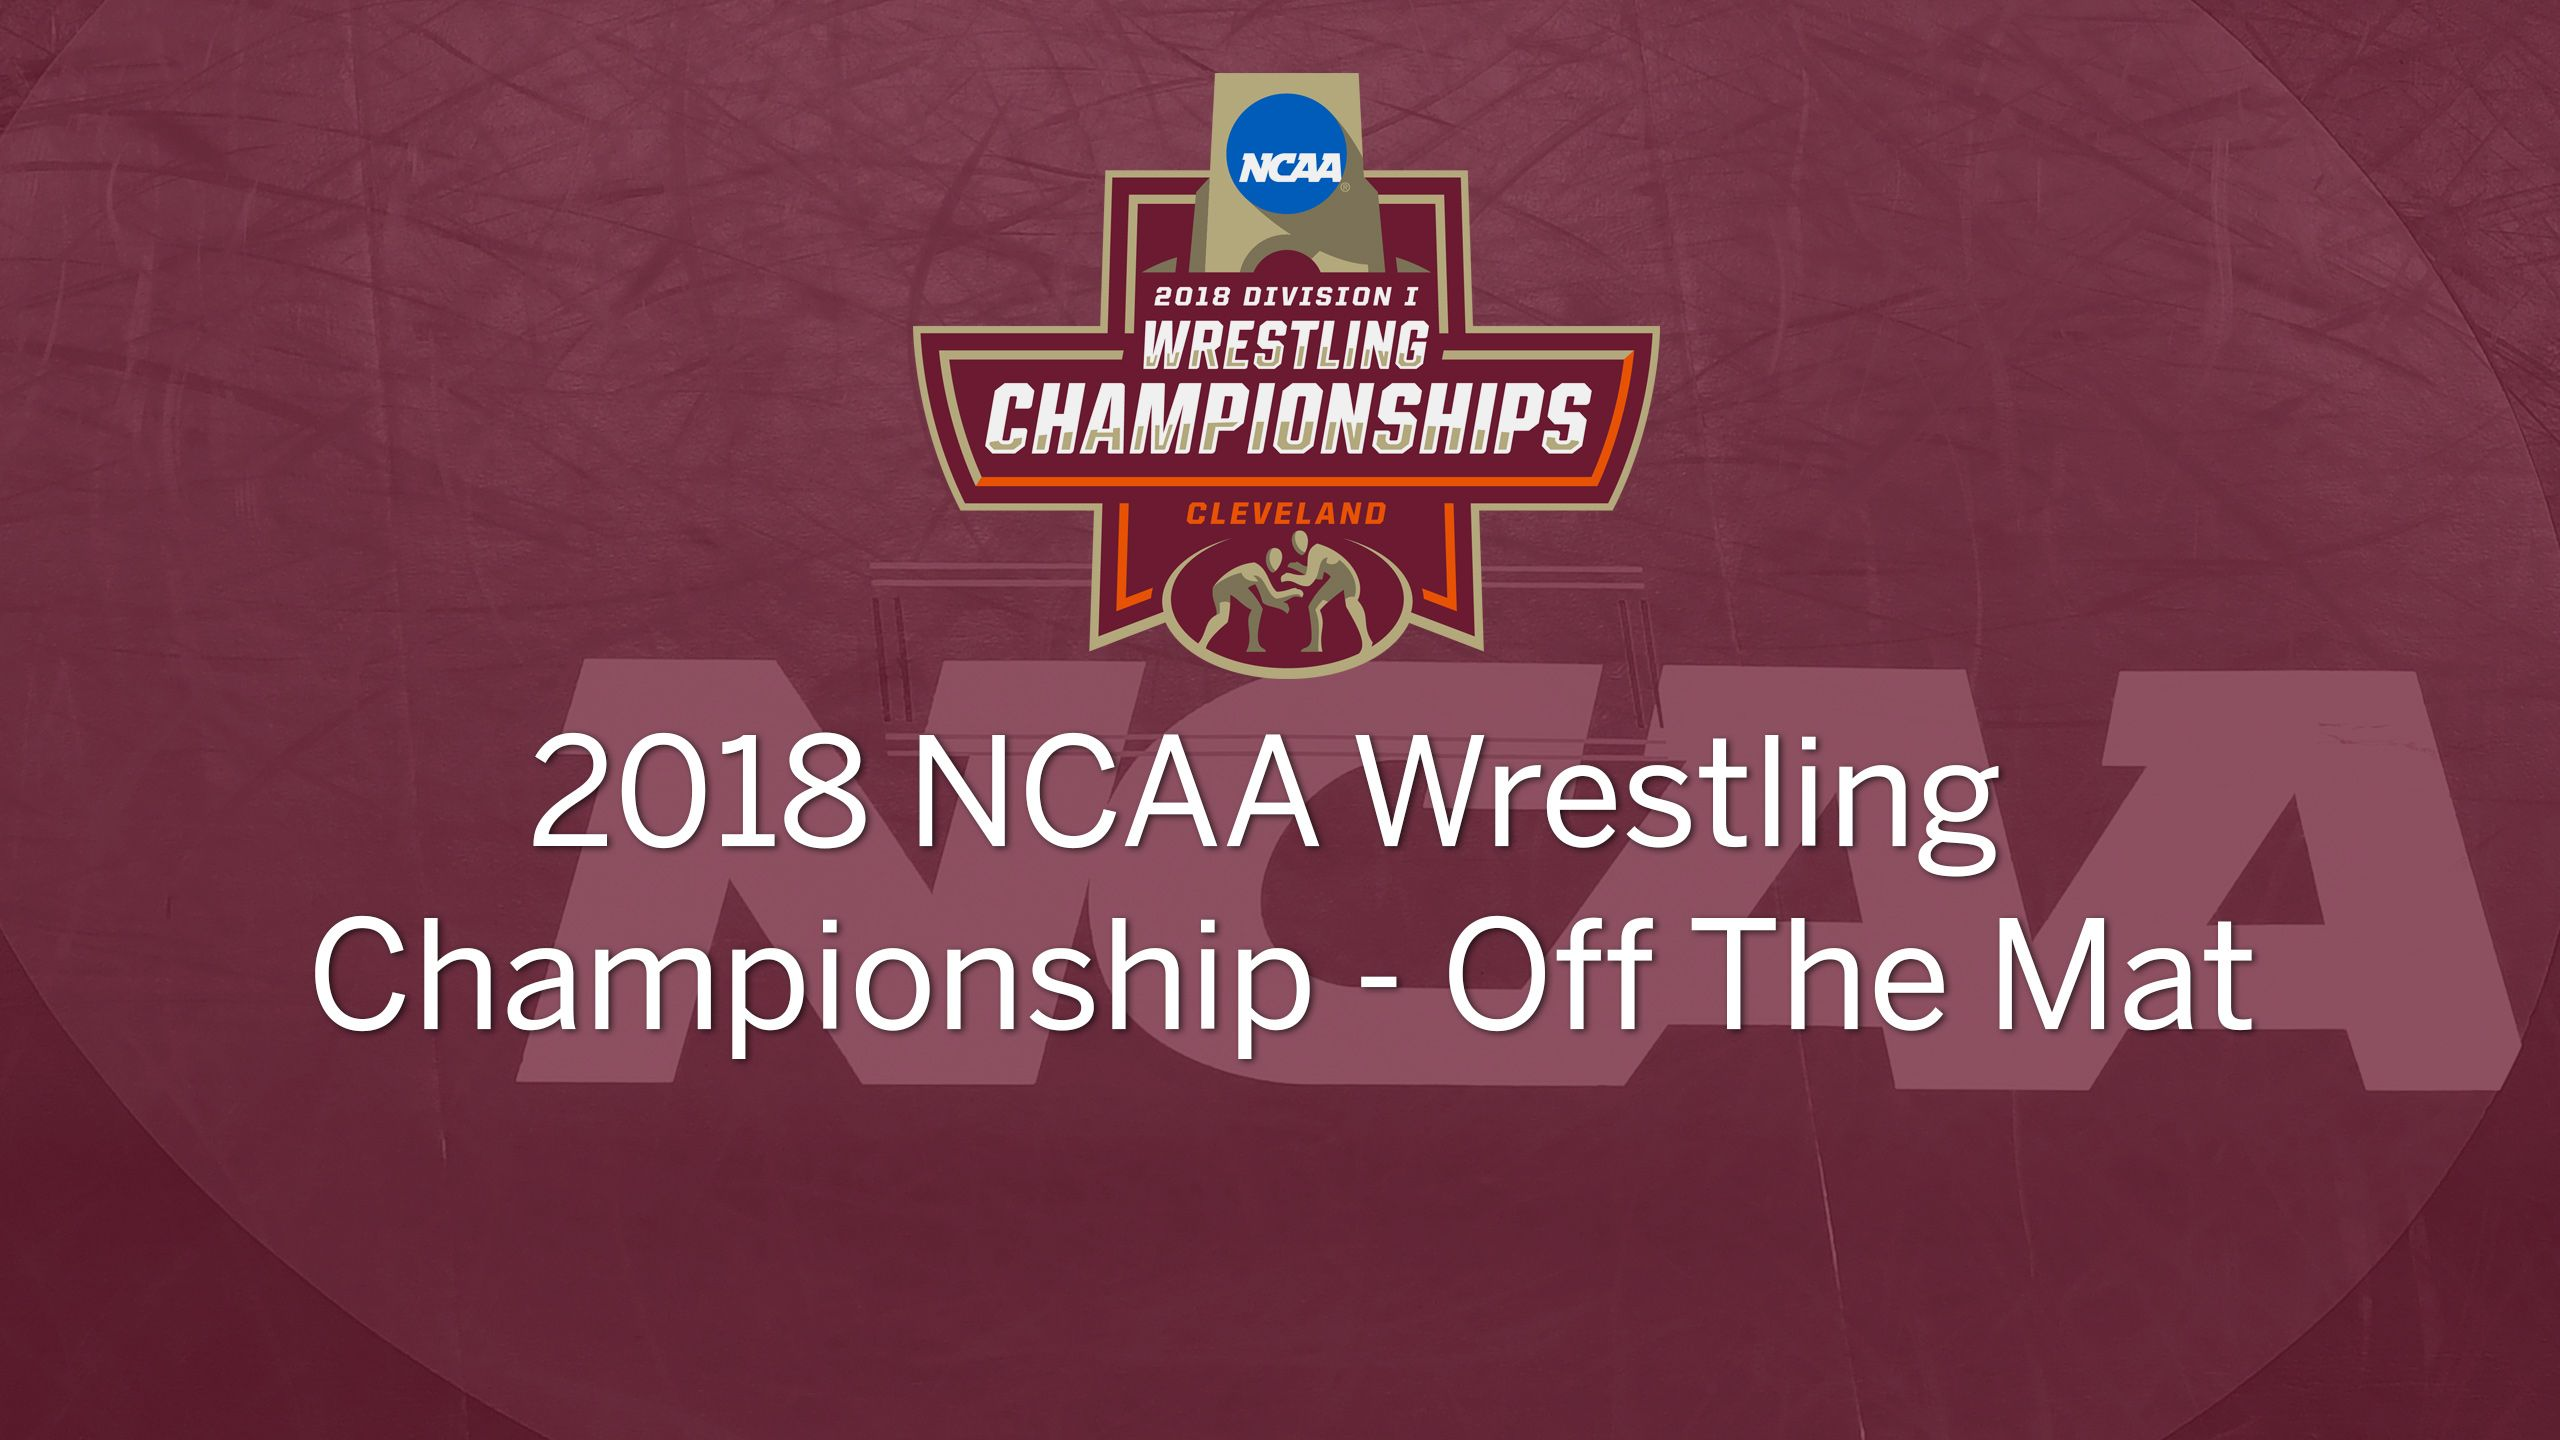 2018 NCAA Wrestling Championships Off The Mat (Championship)